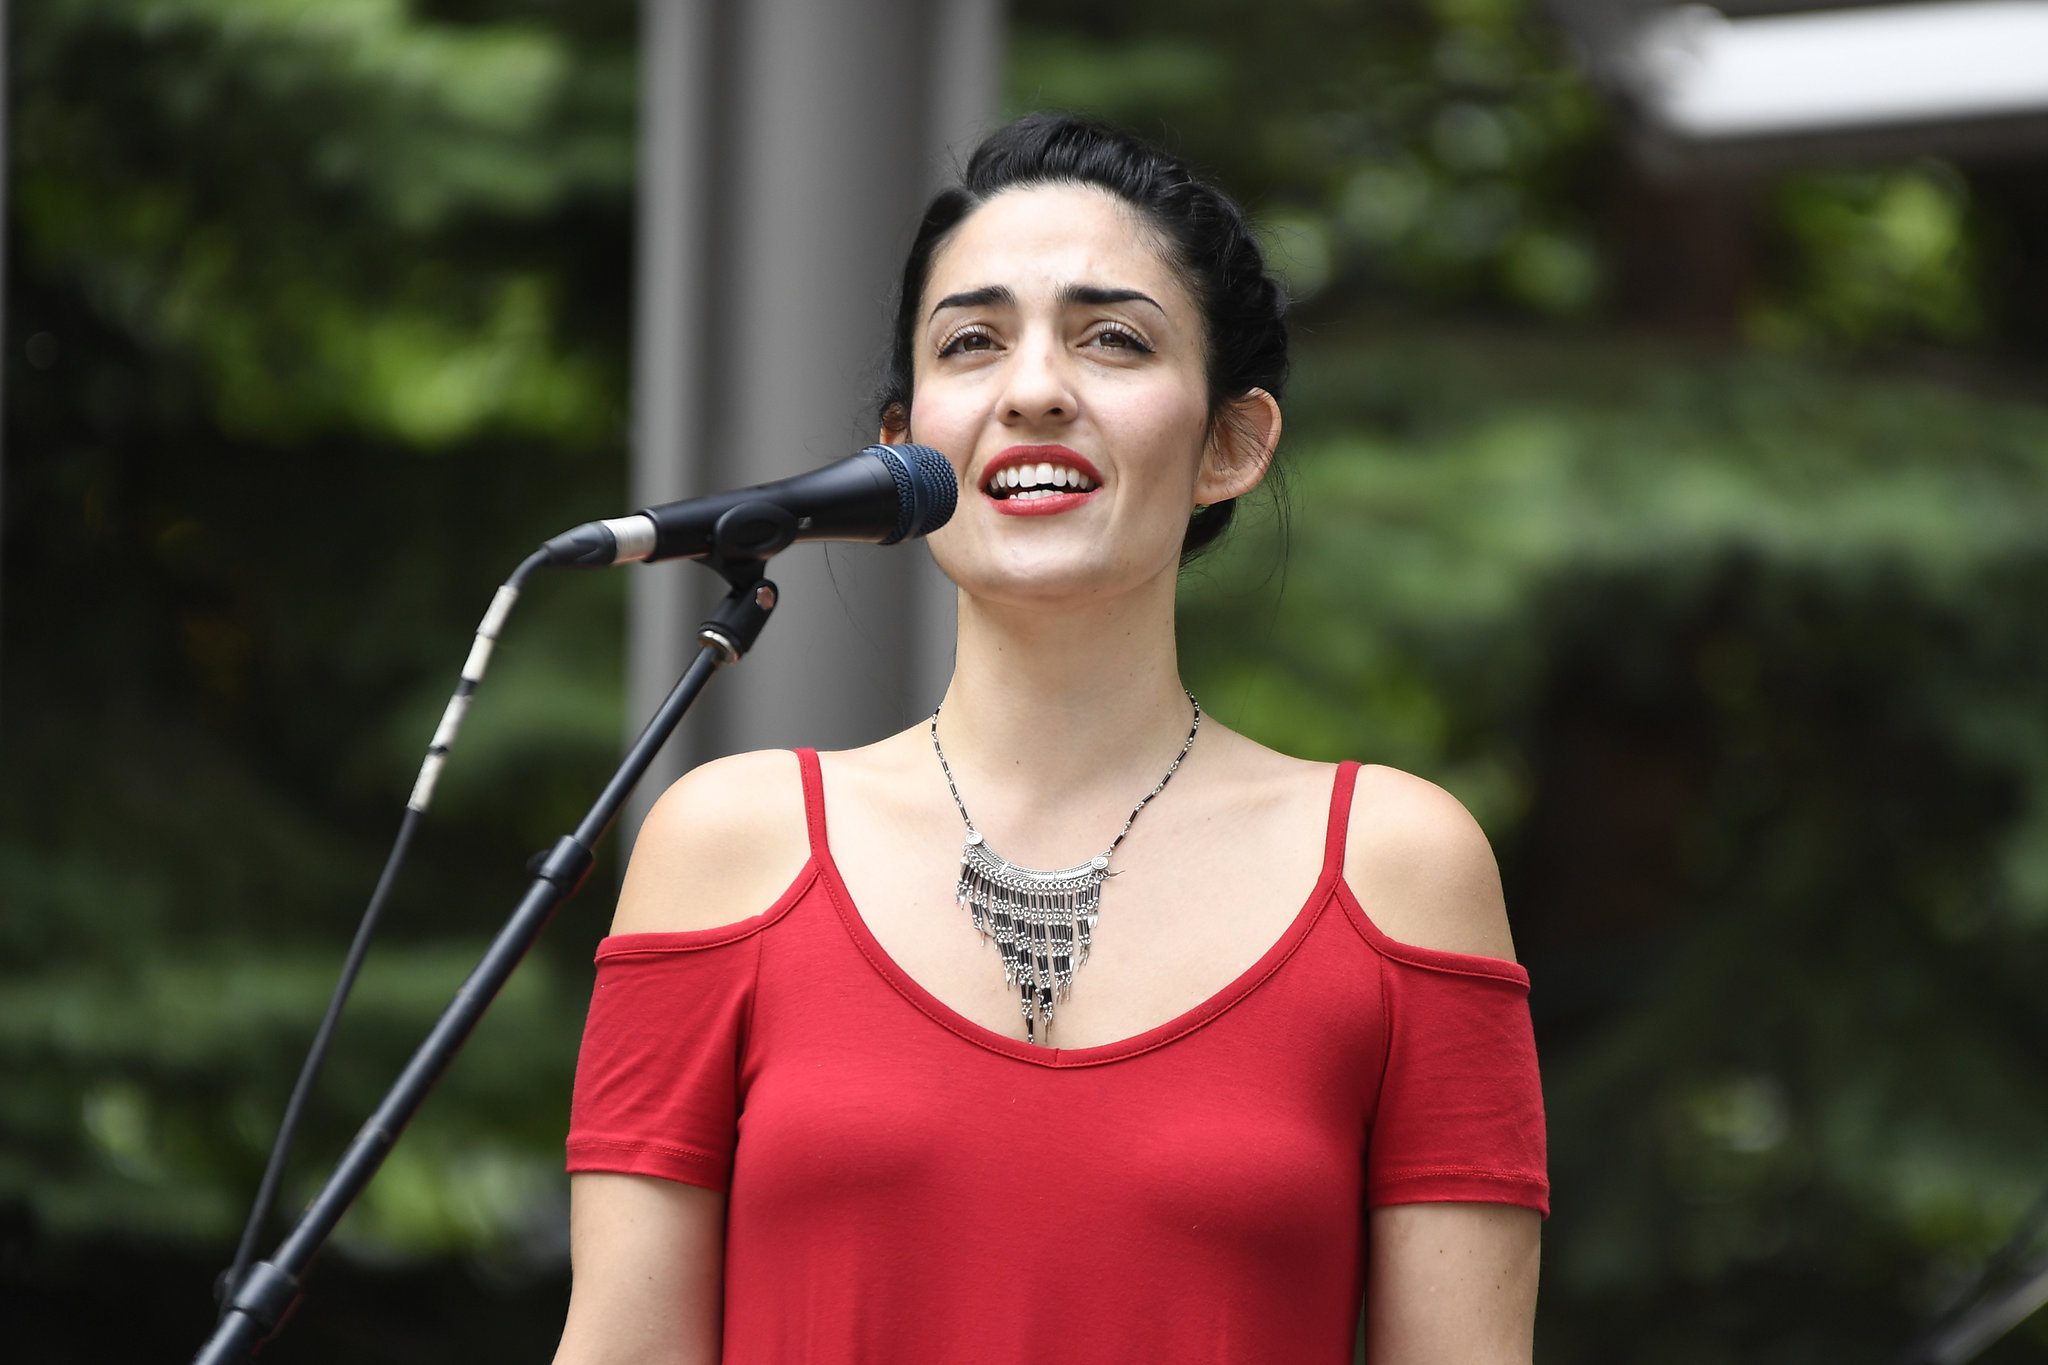 Canada Day singer